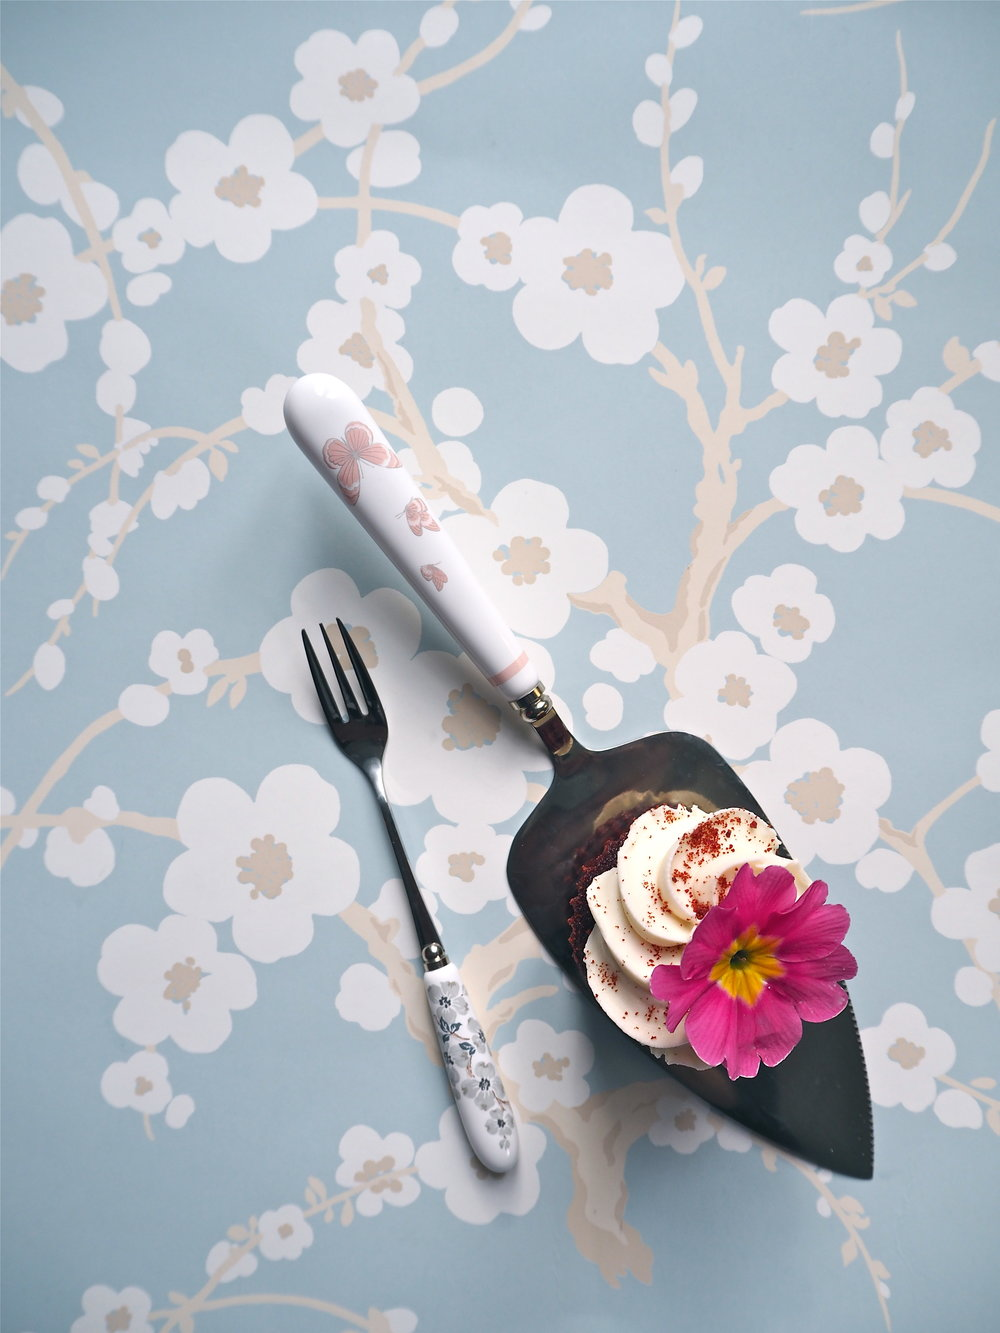 Lori Duck Egg Floral Wallpaper ,  Iona cake fork  and Butterfly Garden  Cake Slice , all Laura Ashley.